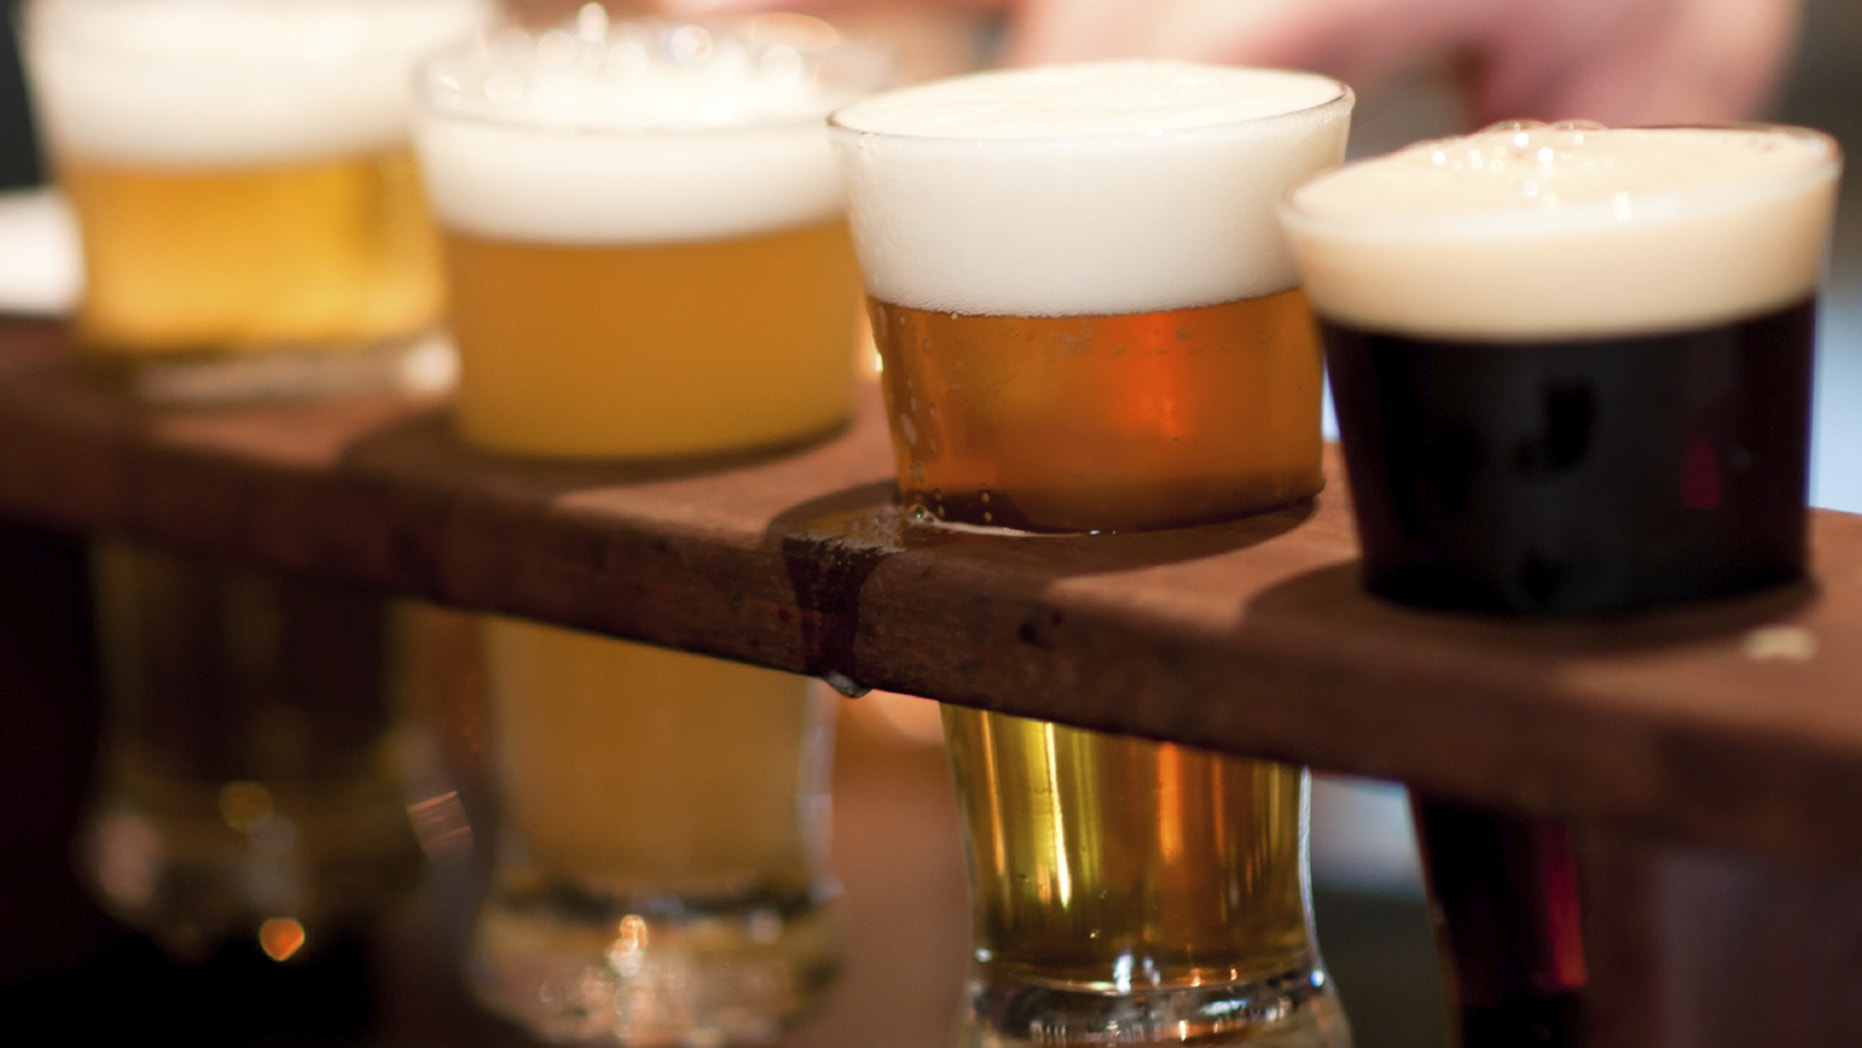 A flight of beers to accompany some musical flights of fancy.